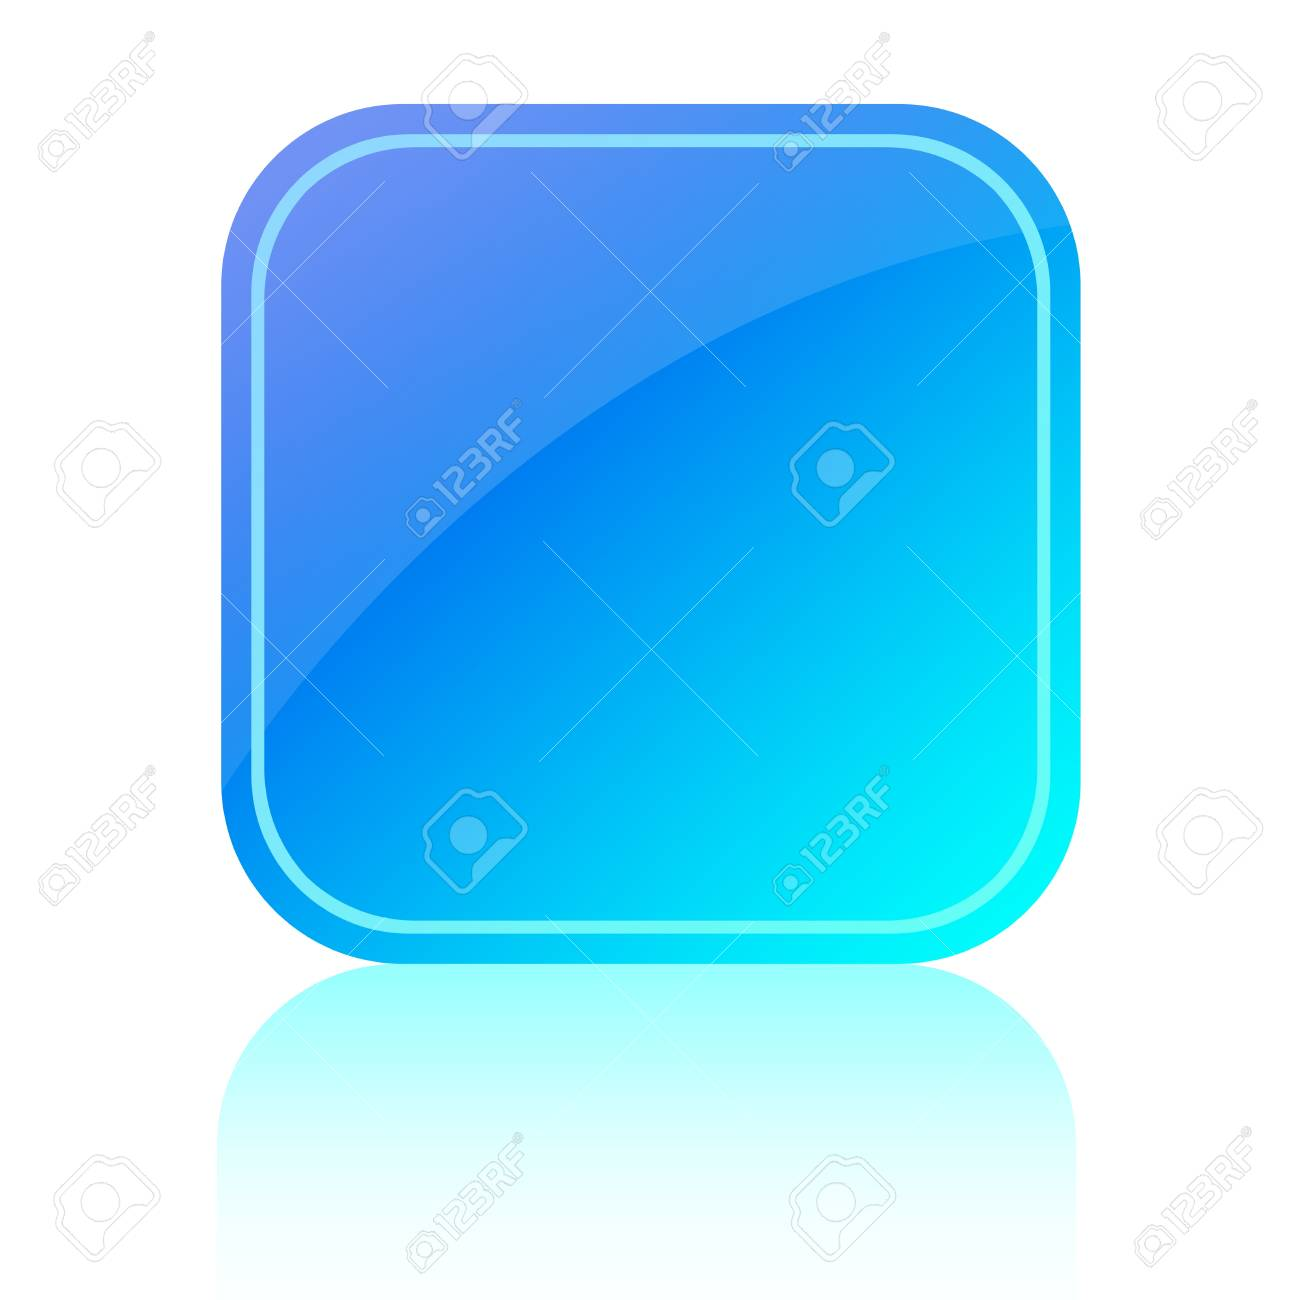 Blue glassy icon Stock Photo - 9718591